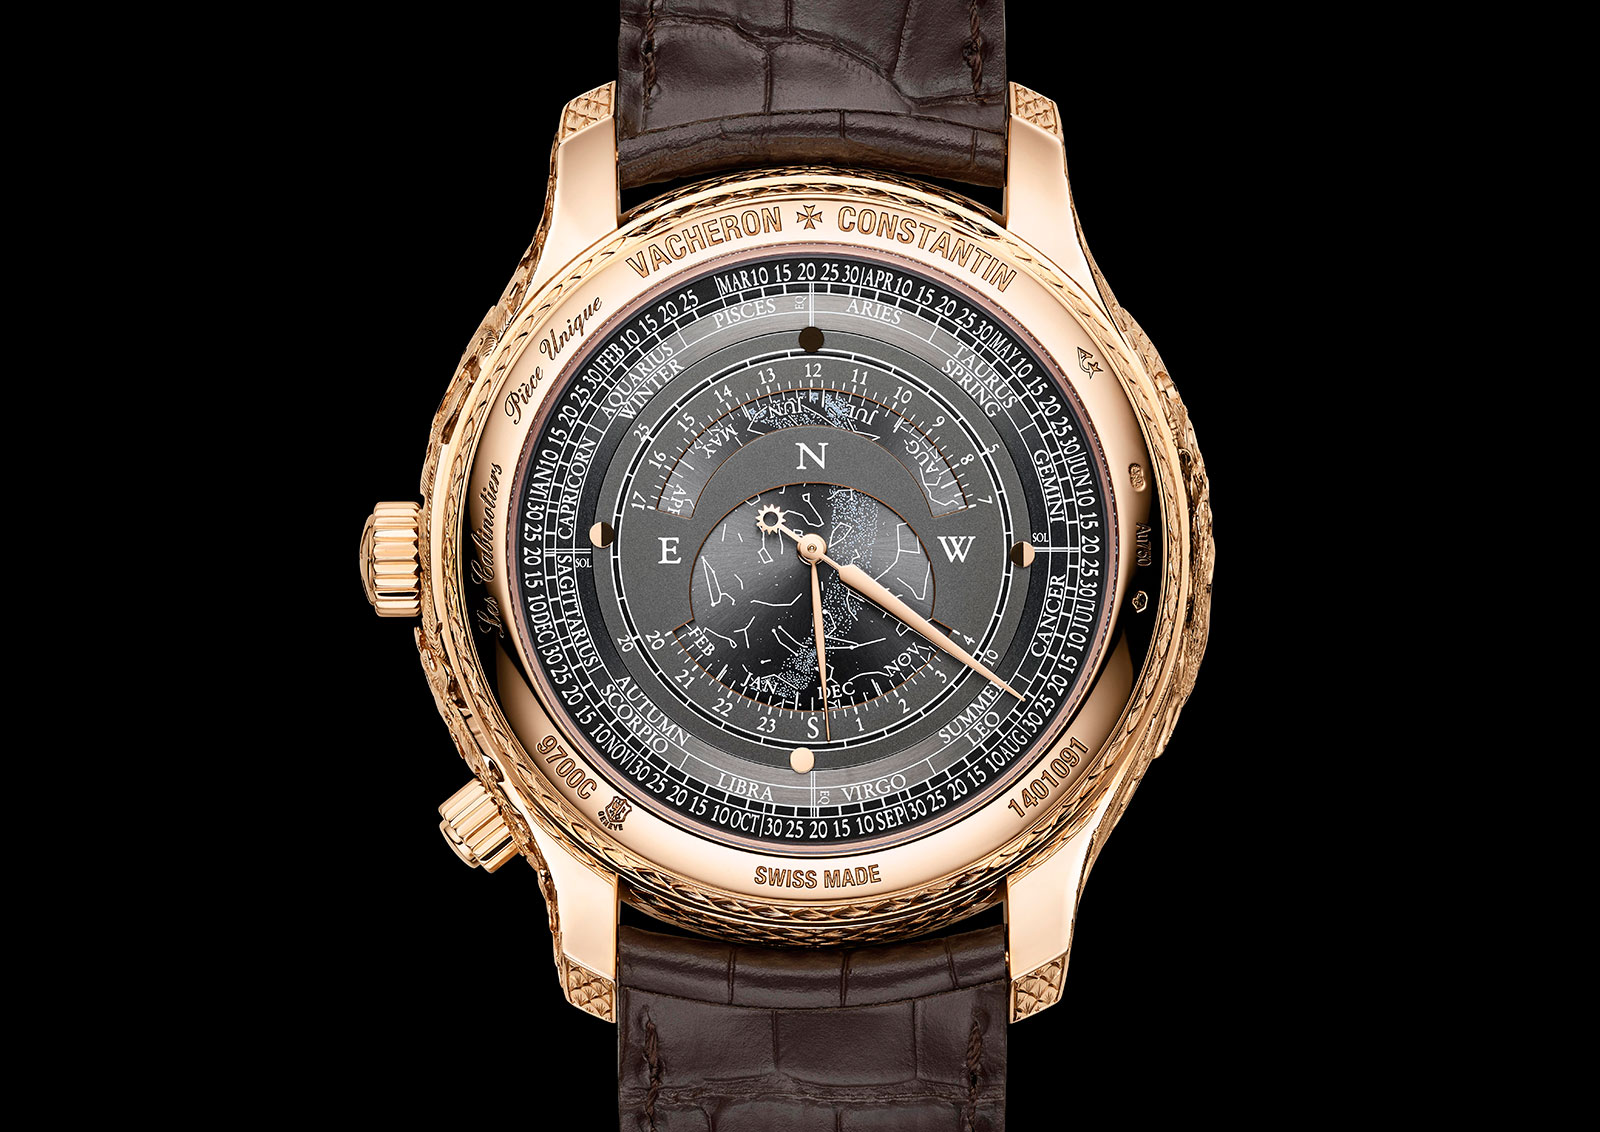 Vacheron Constantin Cabinotiers Grand Complication Phoenix 4